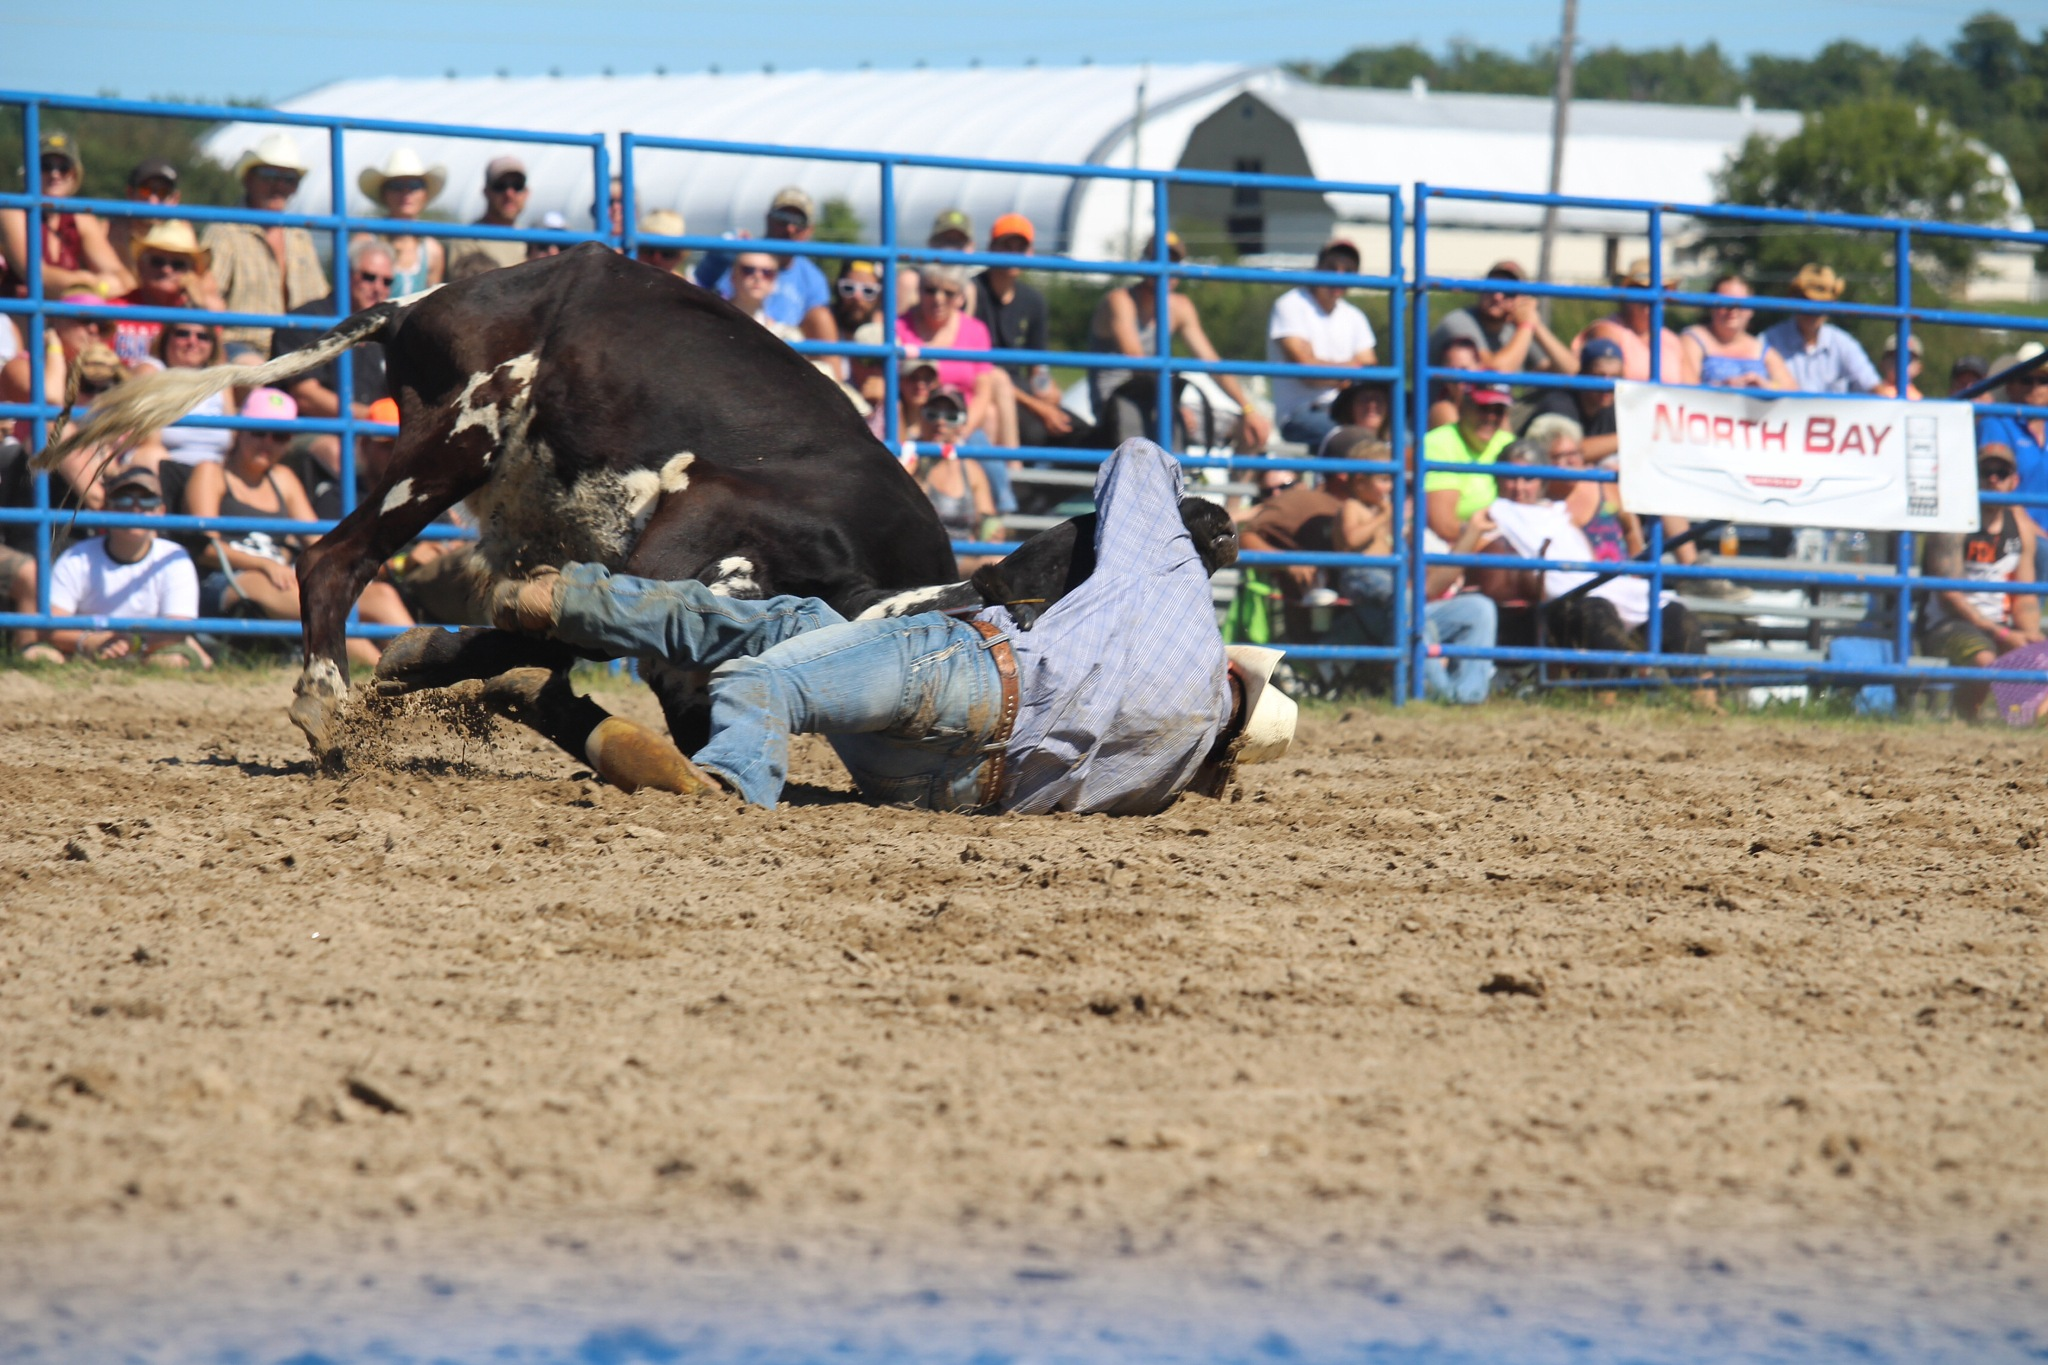 Rodeo bull down  by Amy Arra